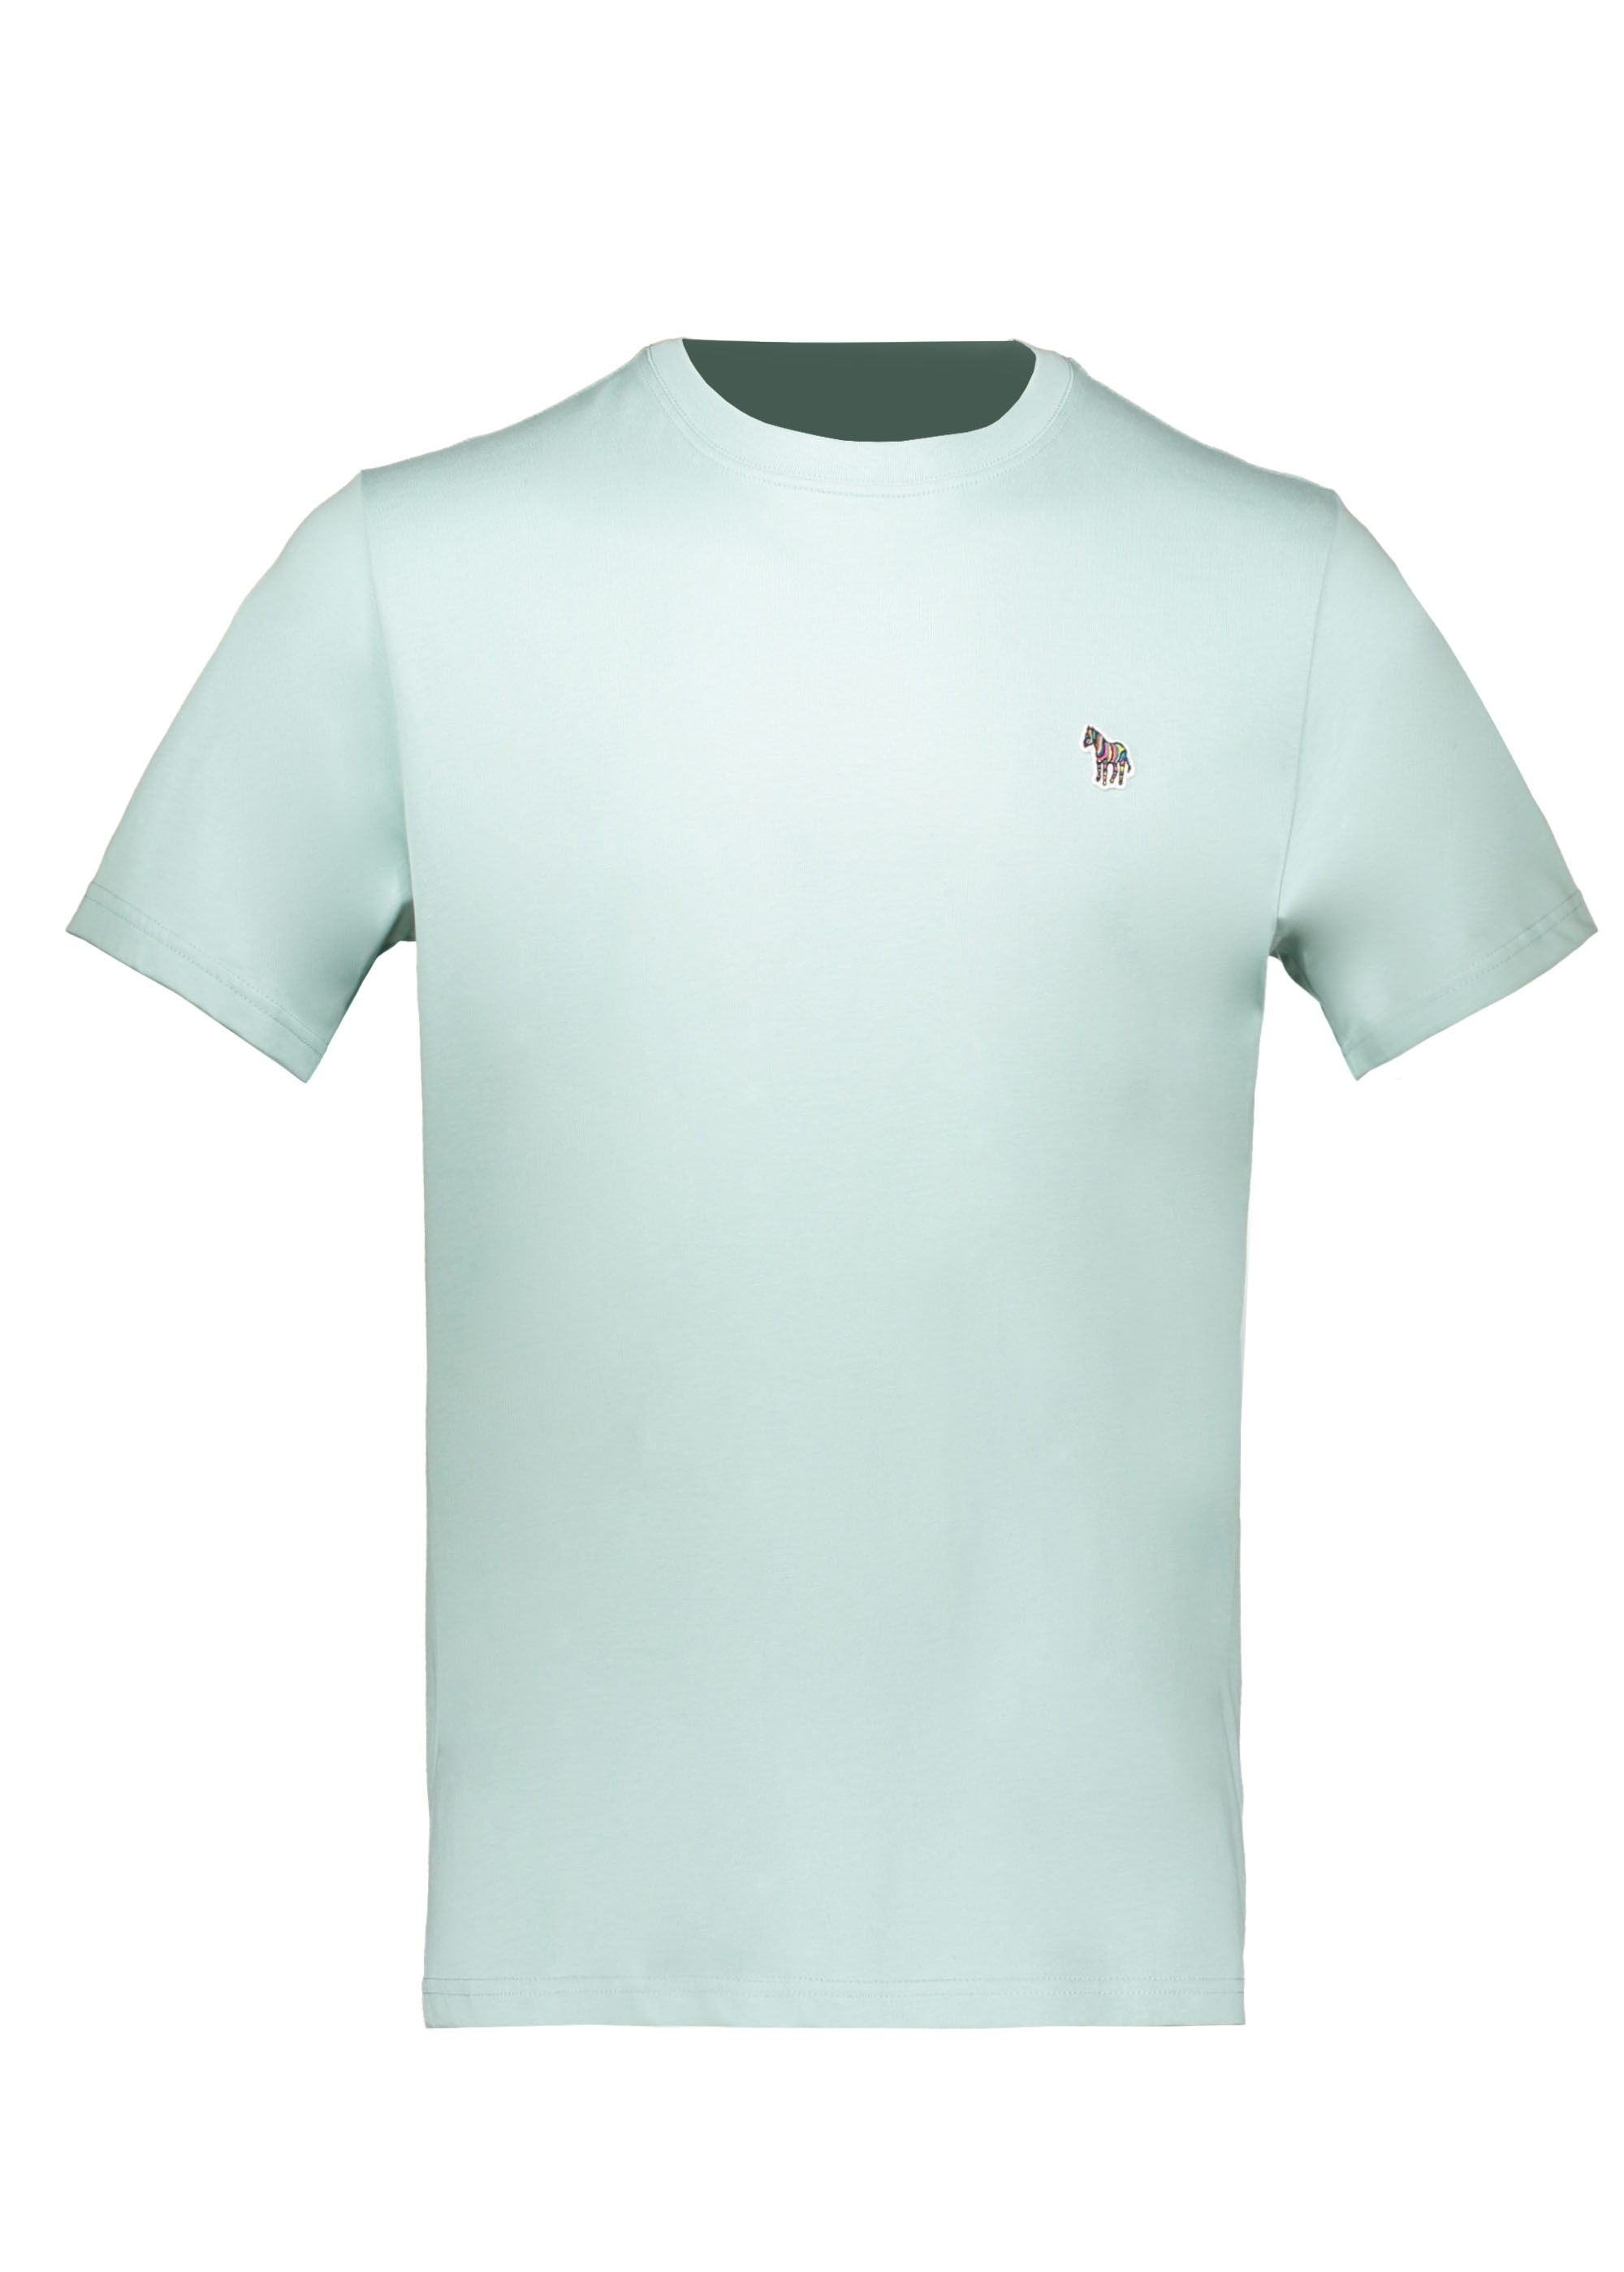 e4433d9e Paul Smith Reg Fit SS Tee - Green - T-shirts from Triads UK